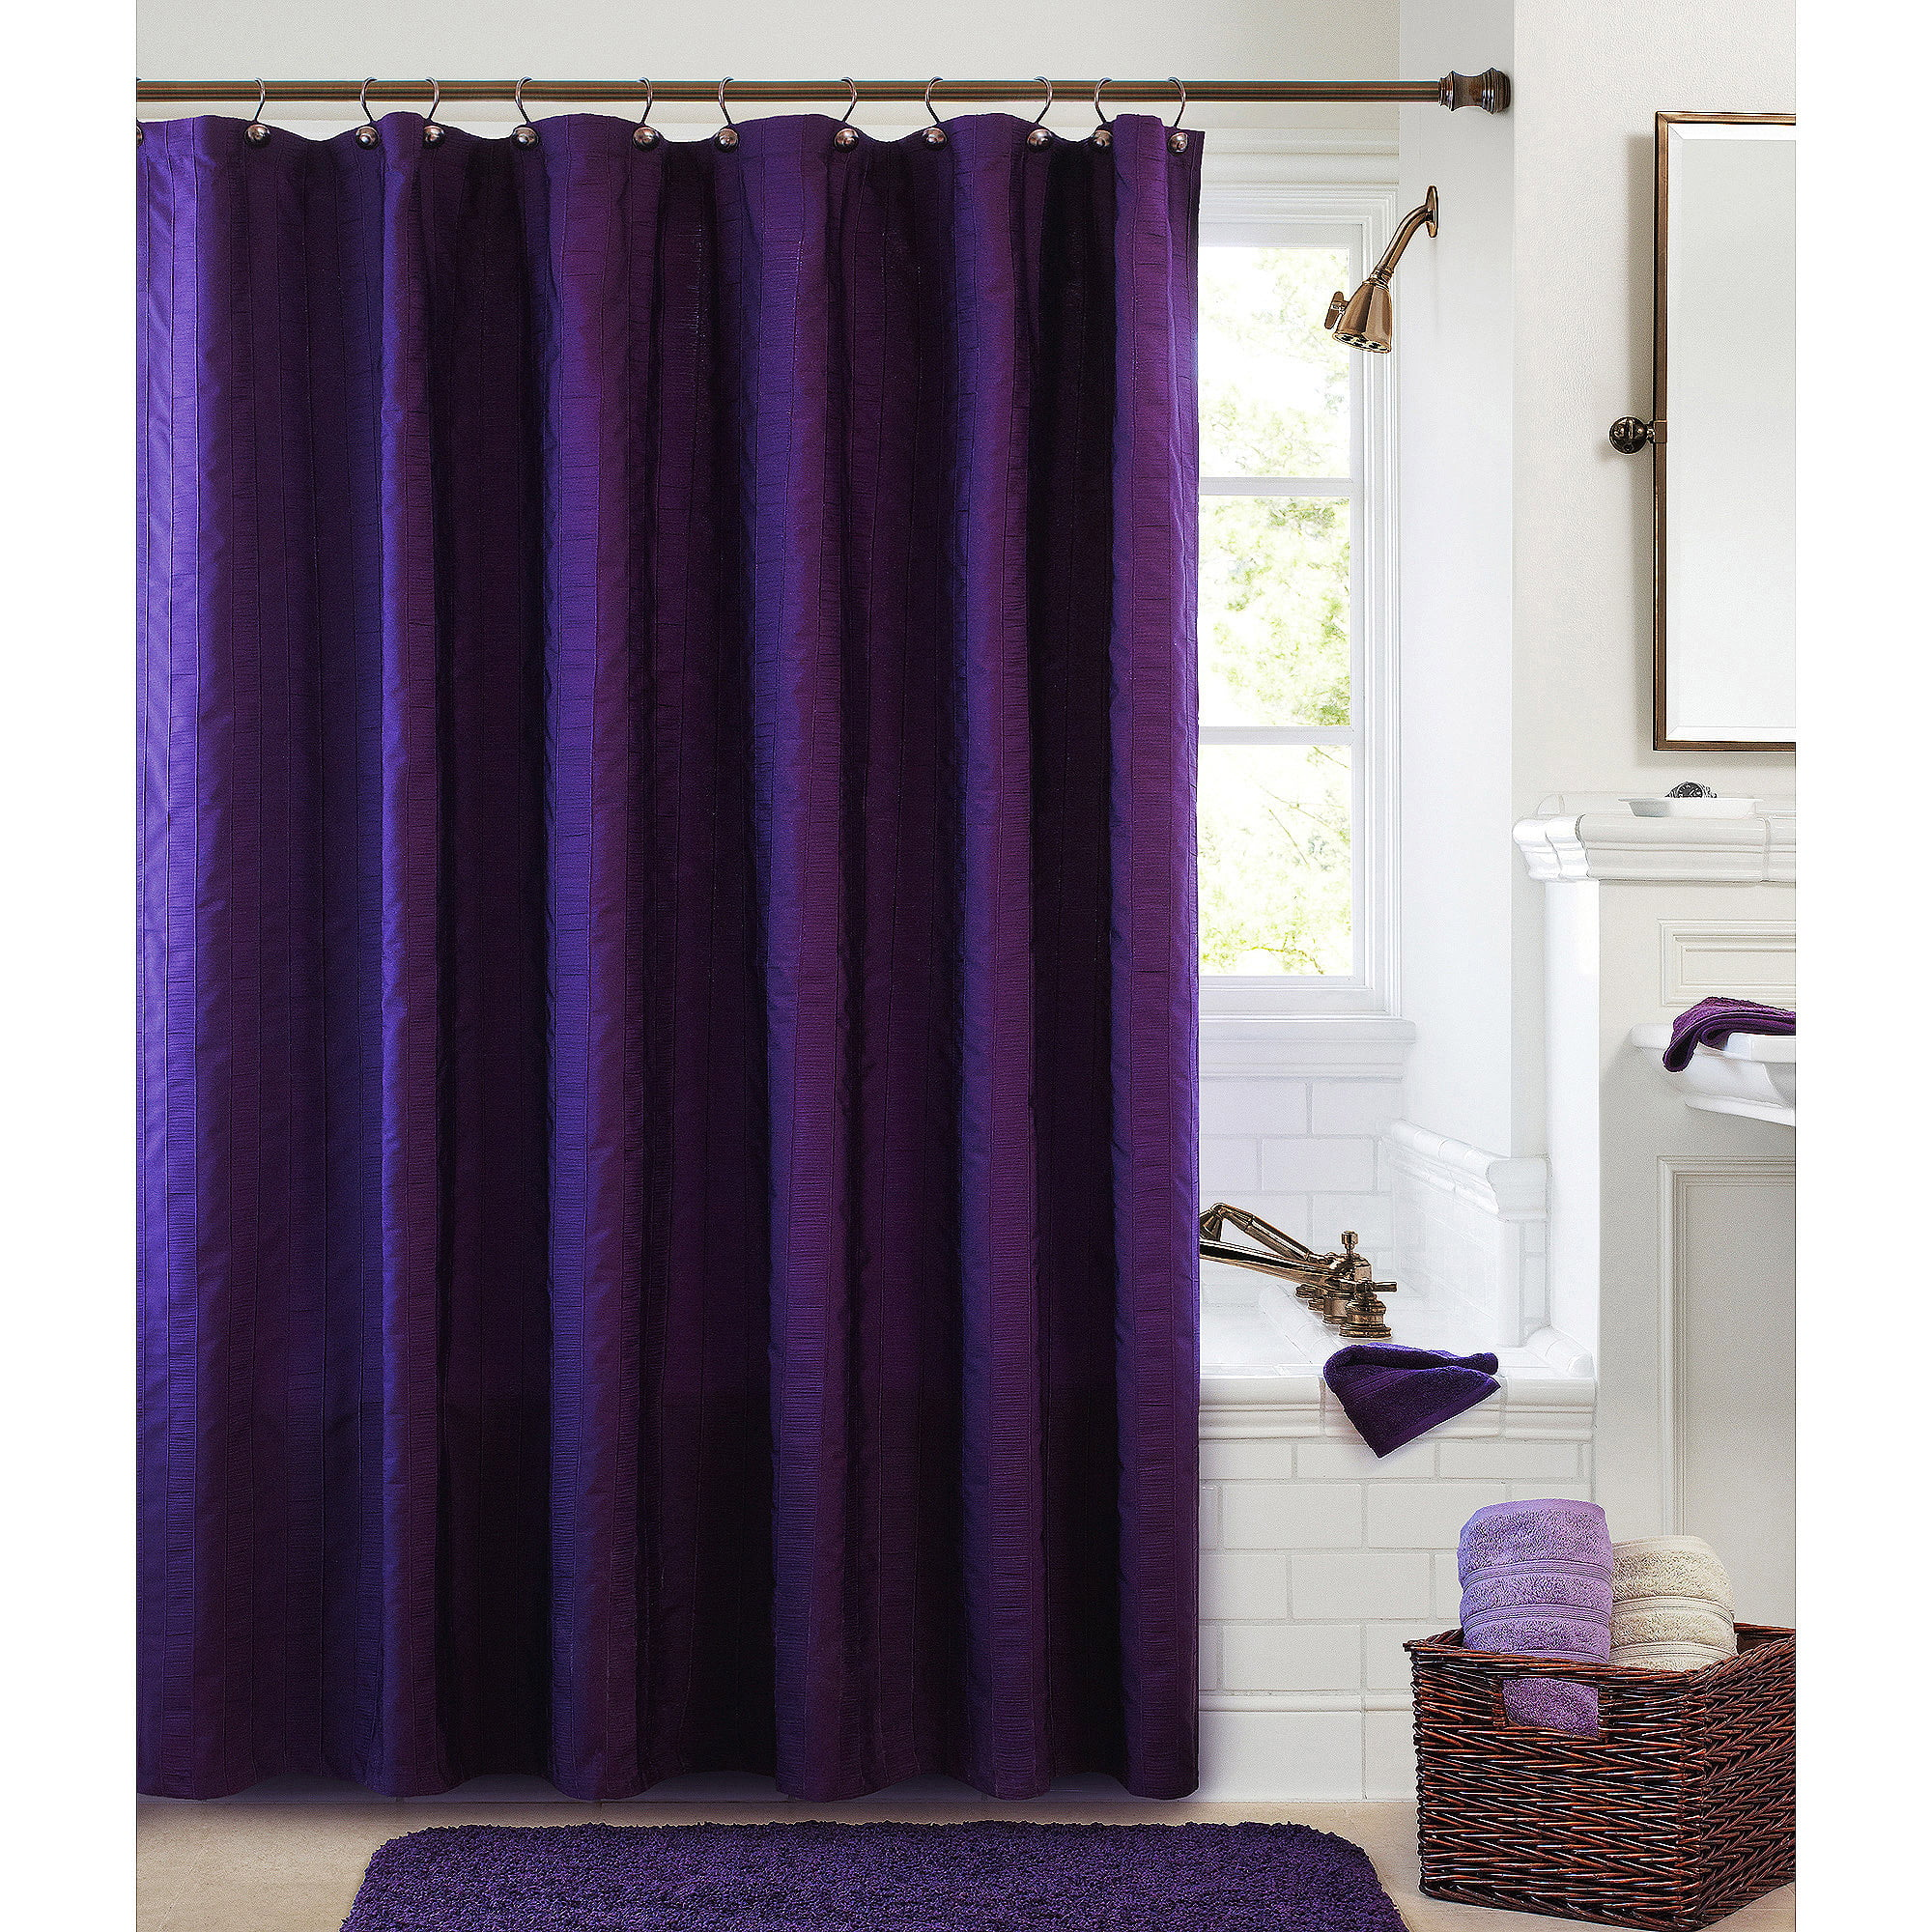 Bath Walmartcom - Shower curtains for bathroom